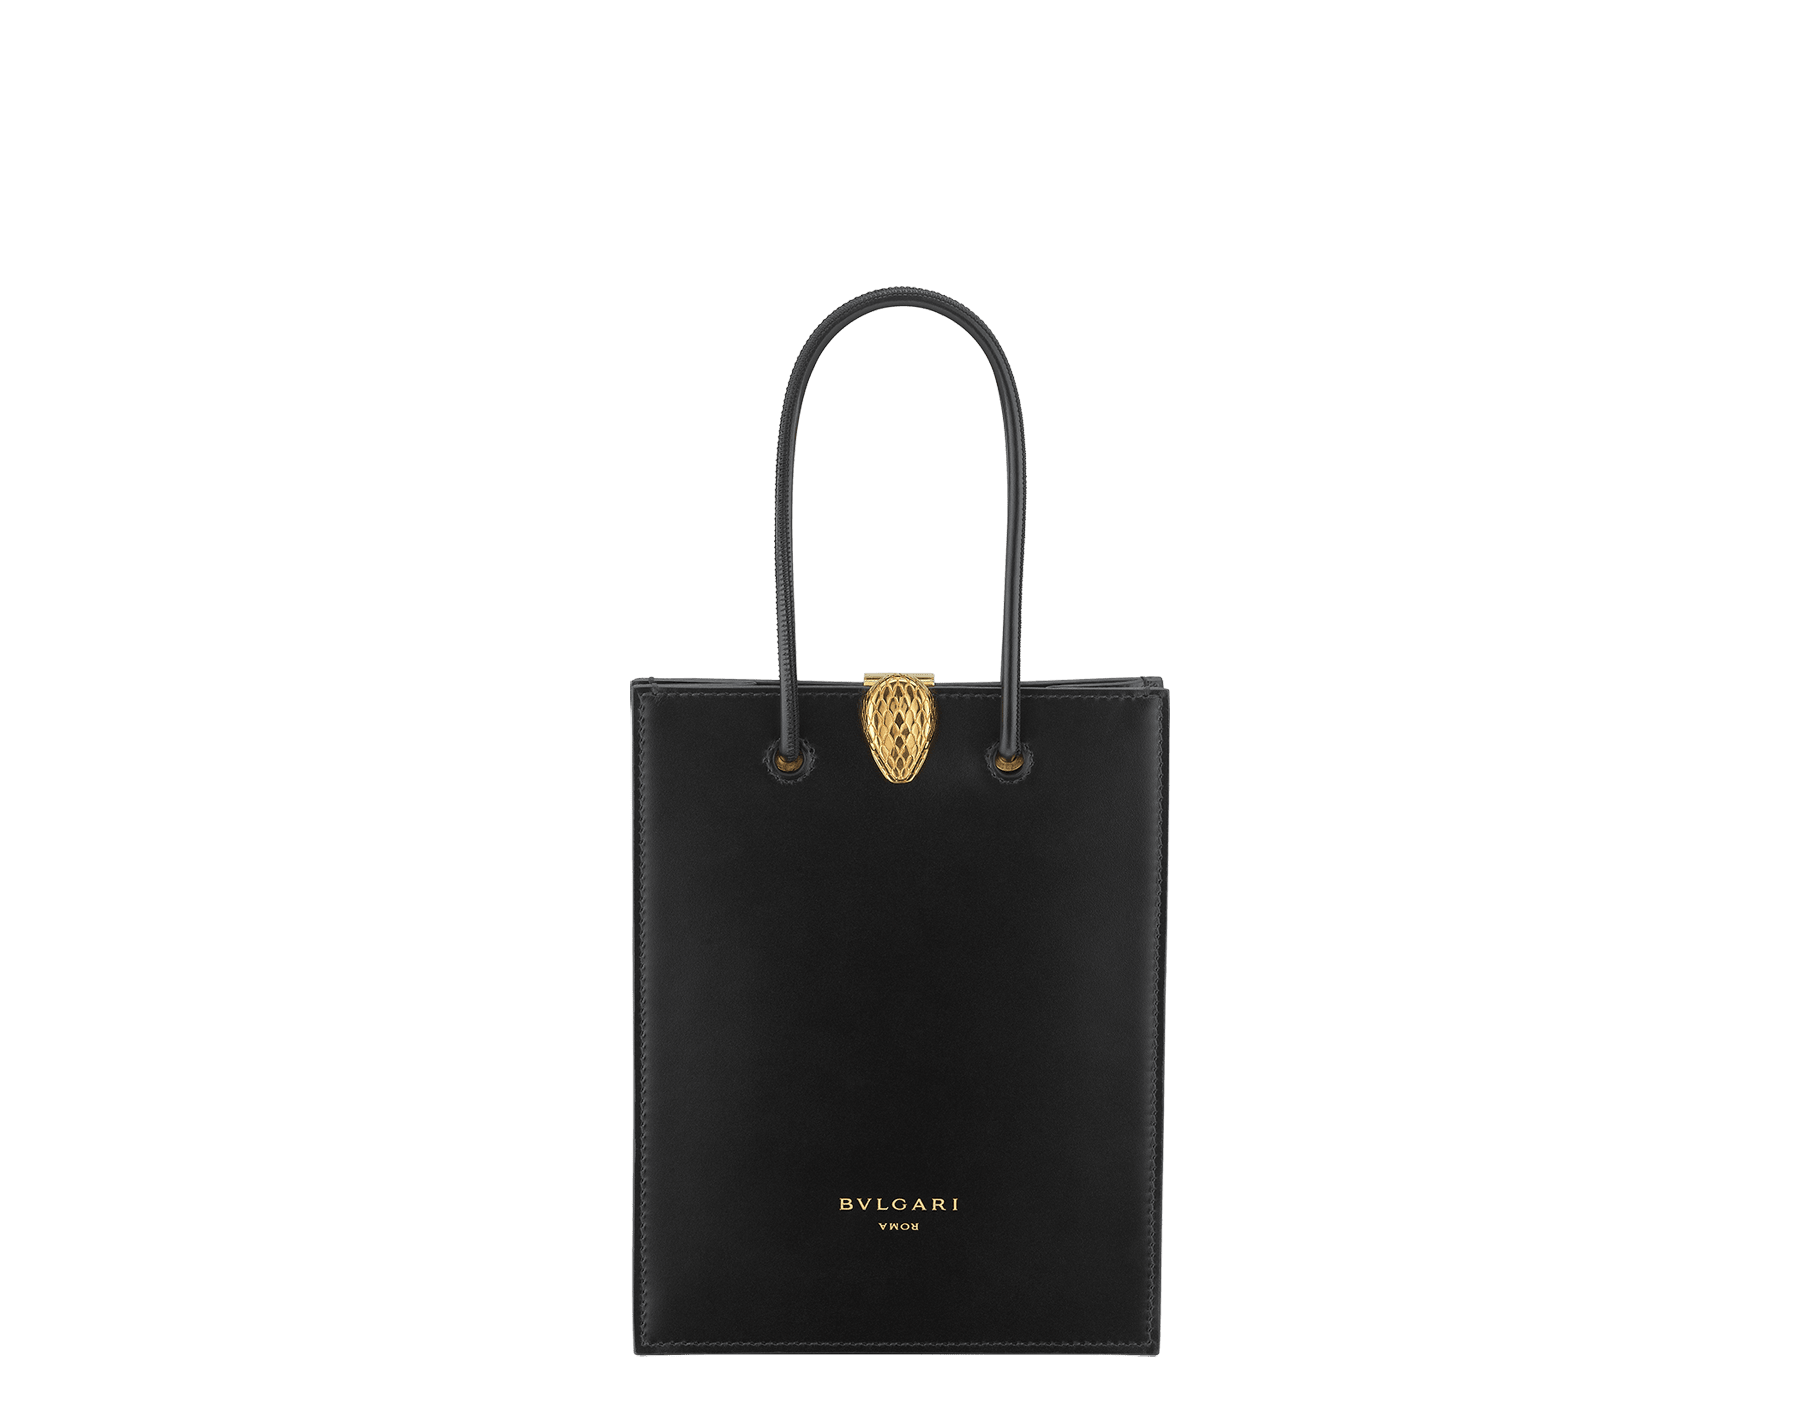 Alexander Wang x Bvlgari mini shopping tote bag in black smooth calf leather. New Serpenti head closure in antique gold plated brass with tempting red enamel eyes. Limited edition. 288726 image 1